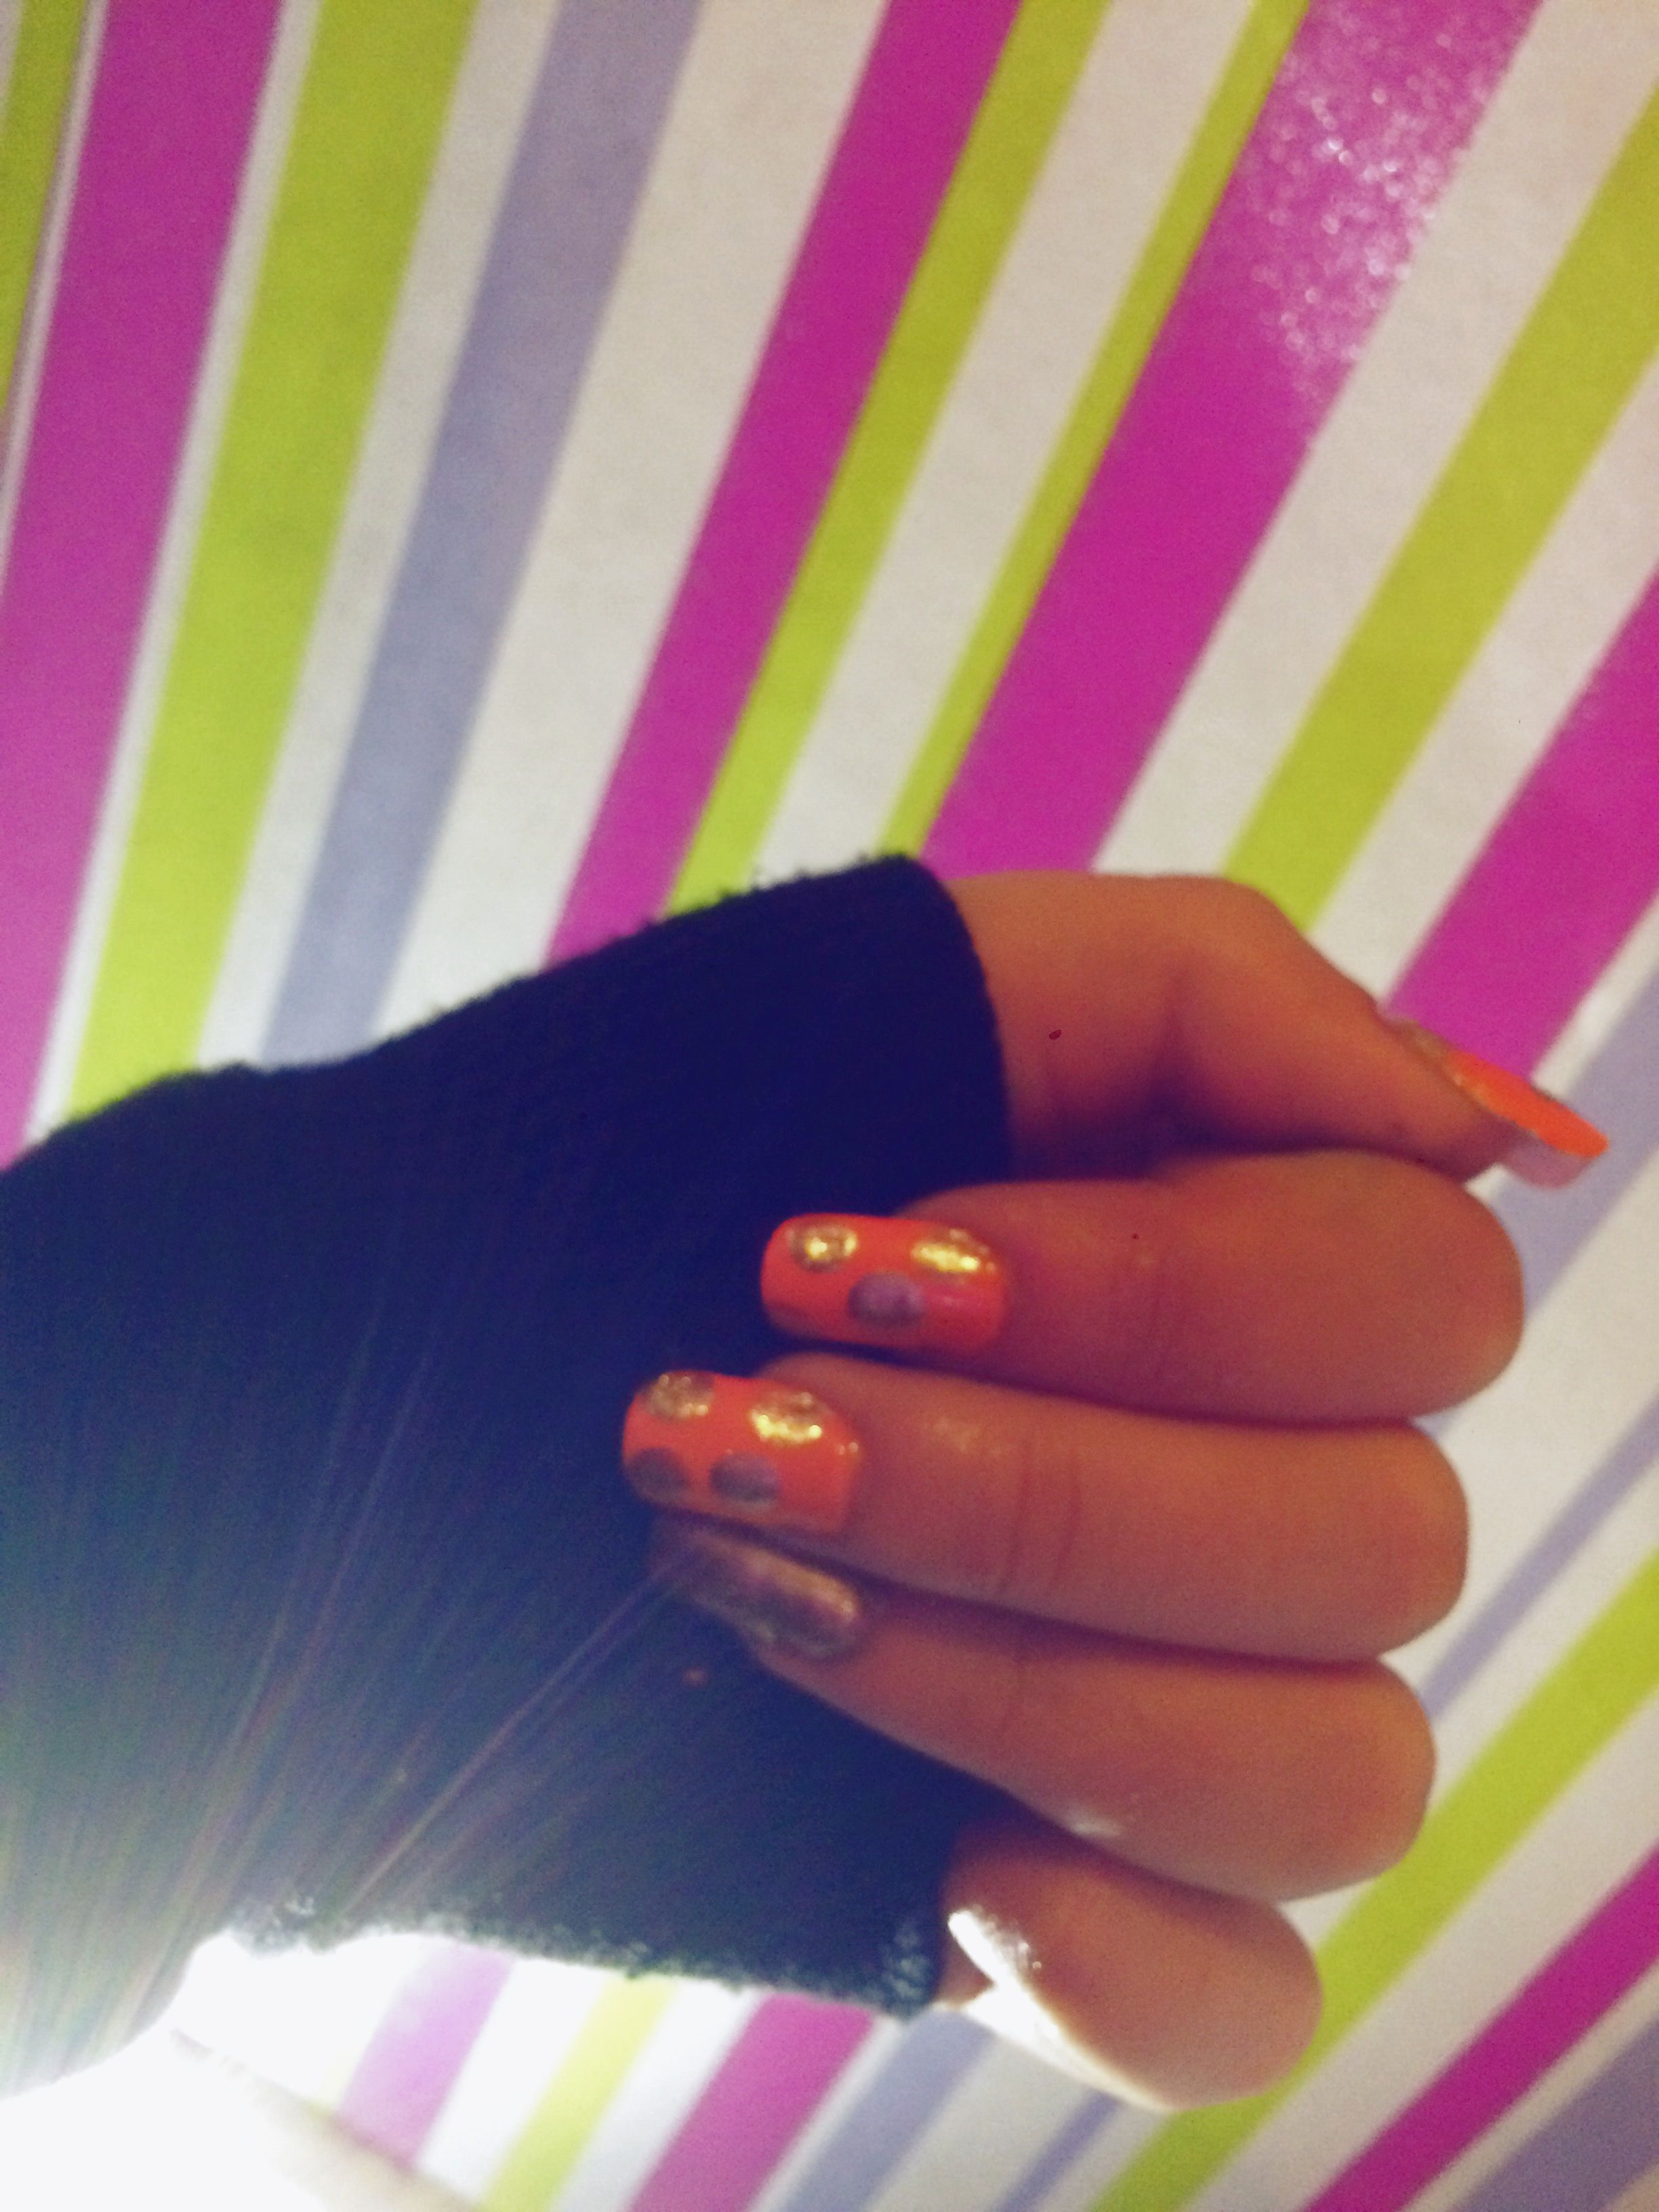 How Cute Is This Nail Design P S I Do Have A Pinky Just My Zipper